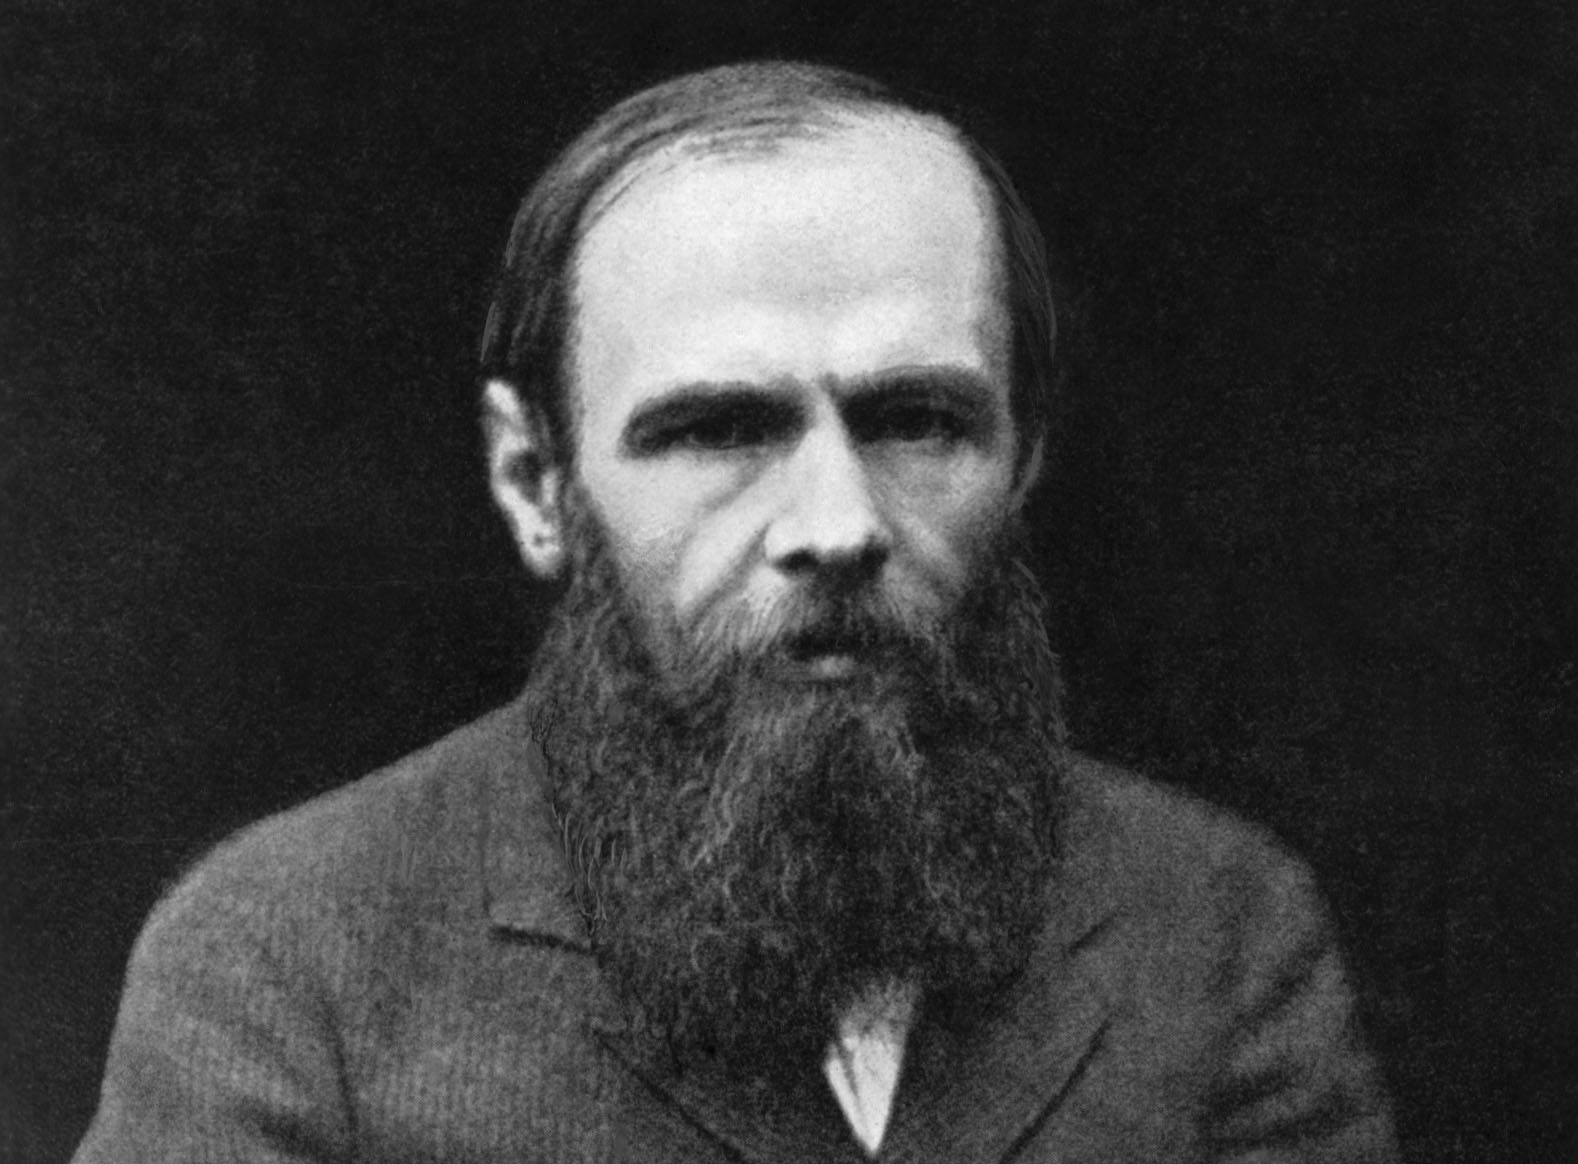 Fyodor Dostoyevsky in Hindi Cinema